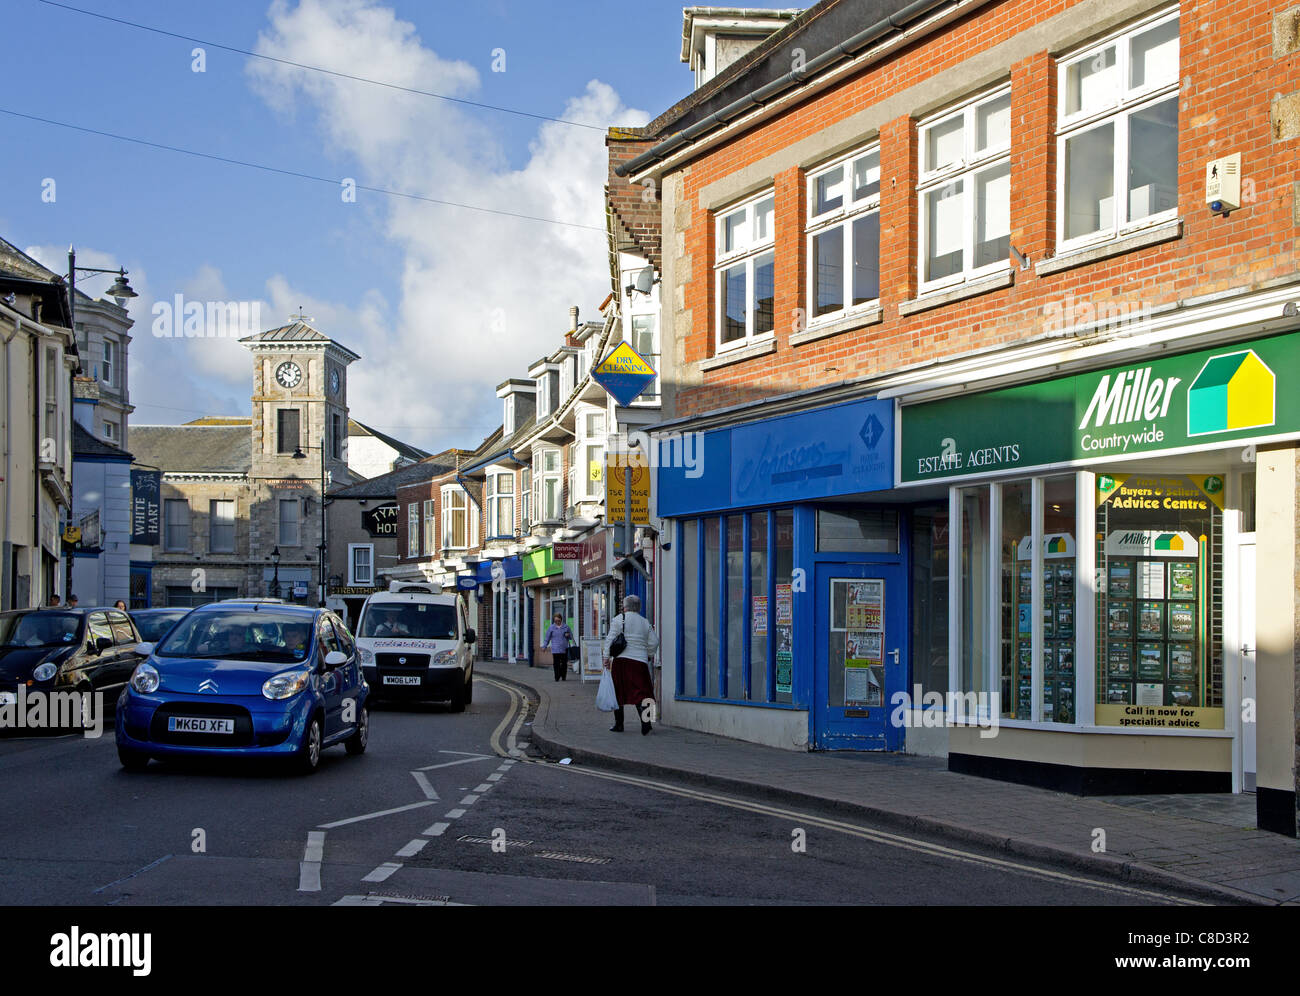 the high street in camborne town centre, cornwall, uk - Stock Image